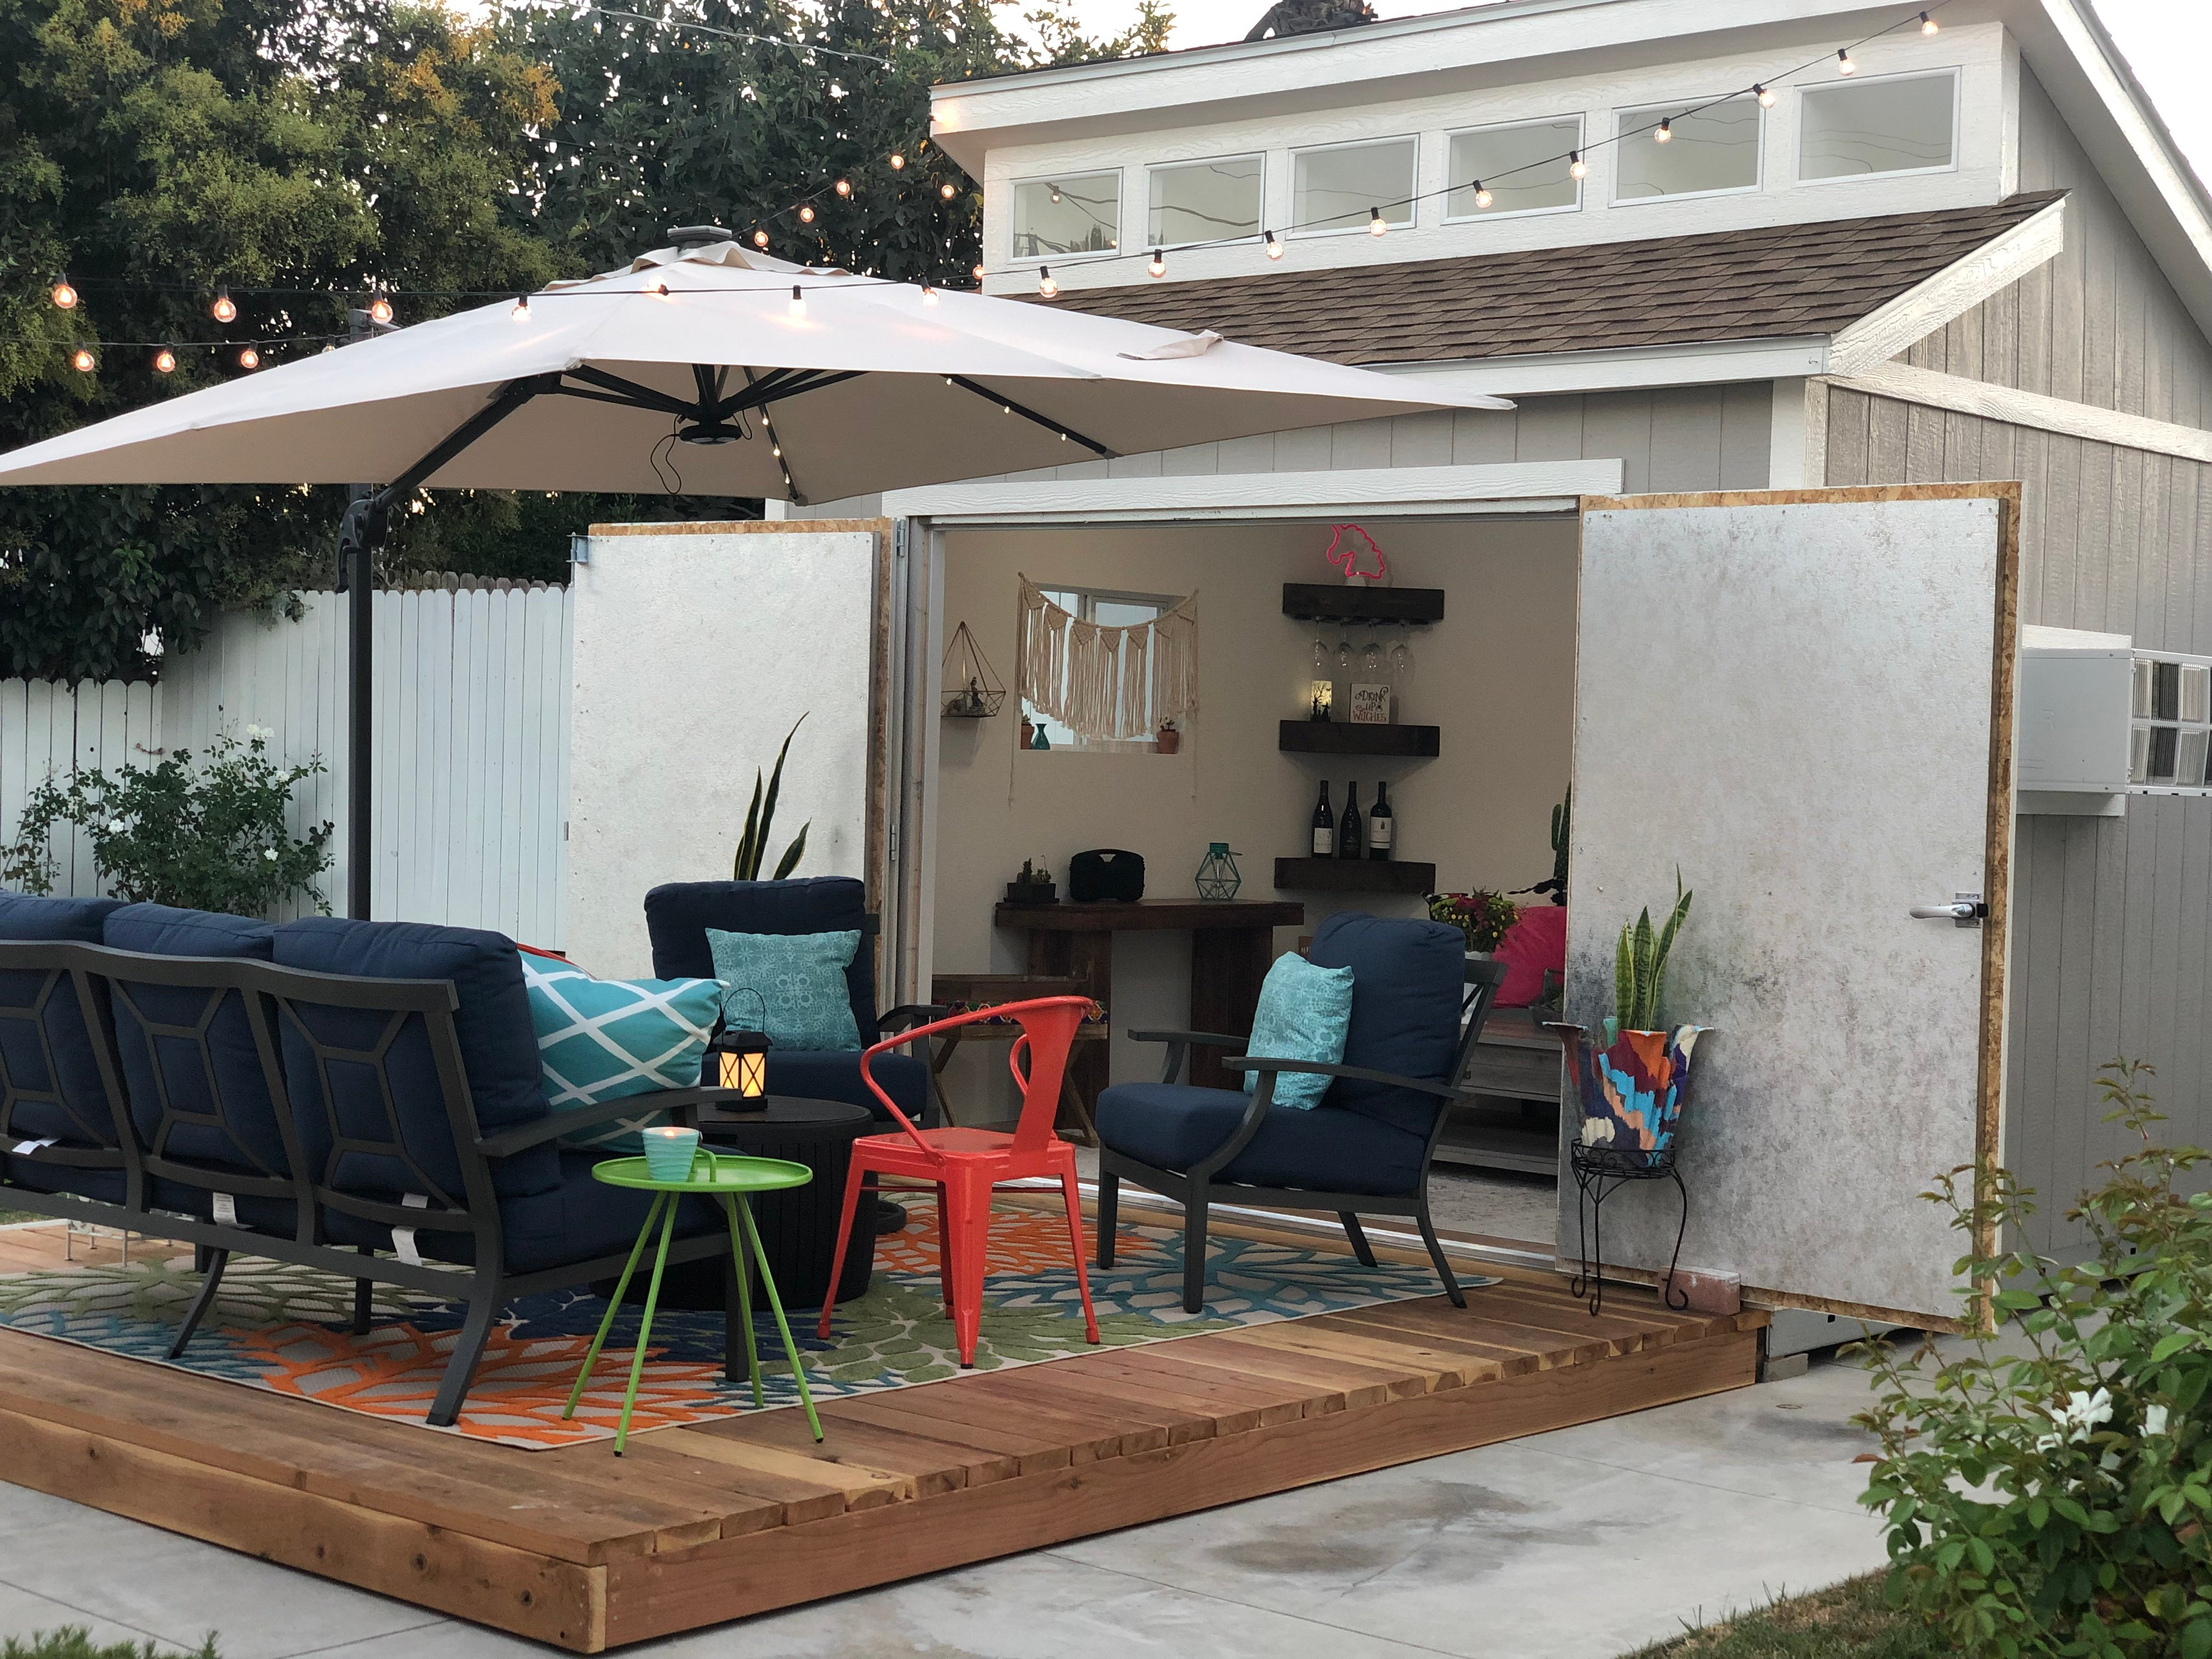 Lorna's Backyard Office and Entertaining Space